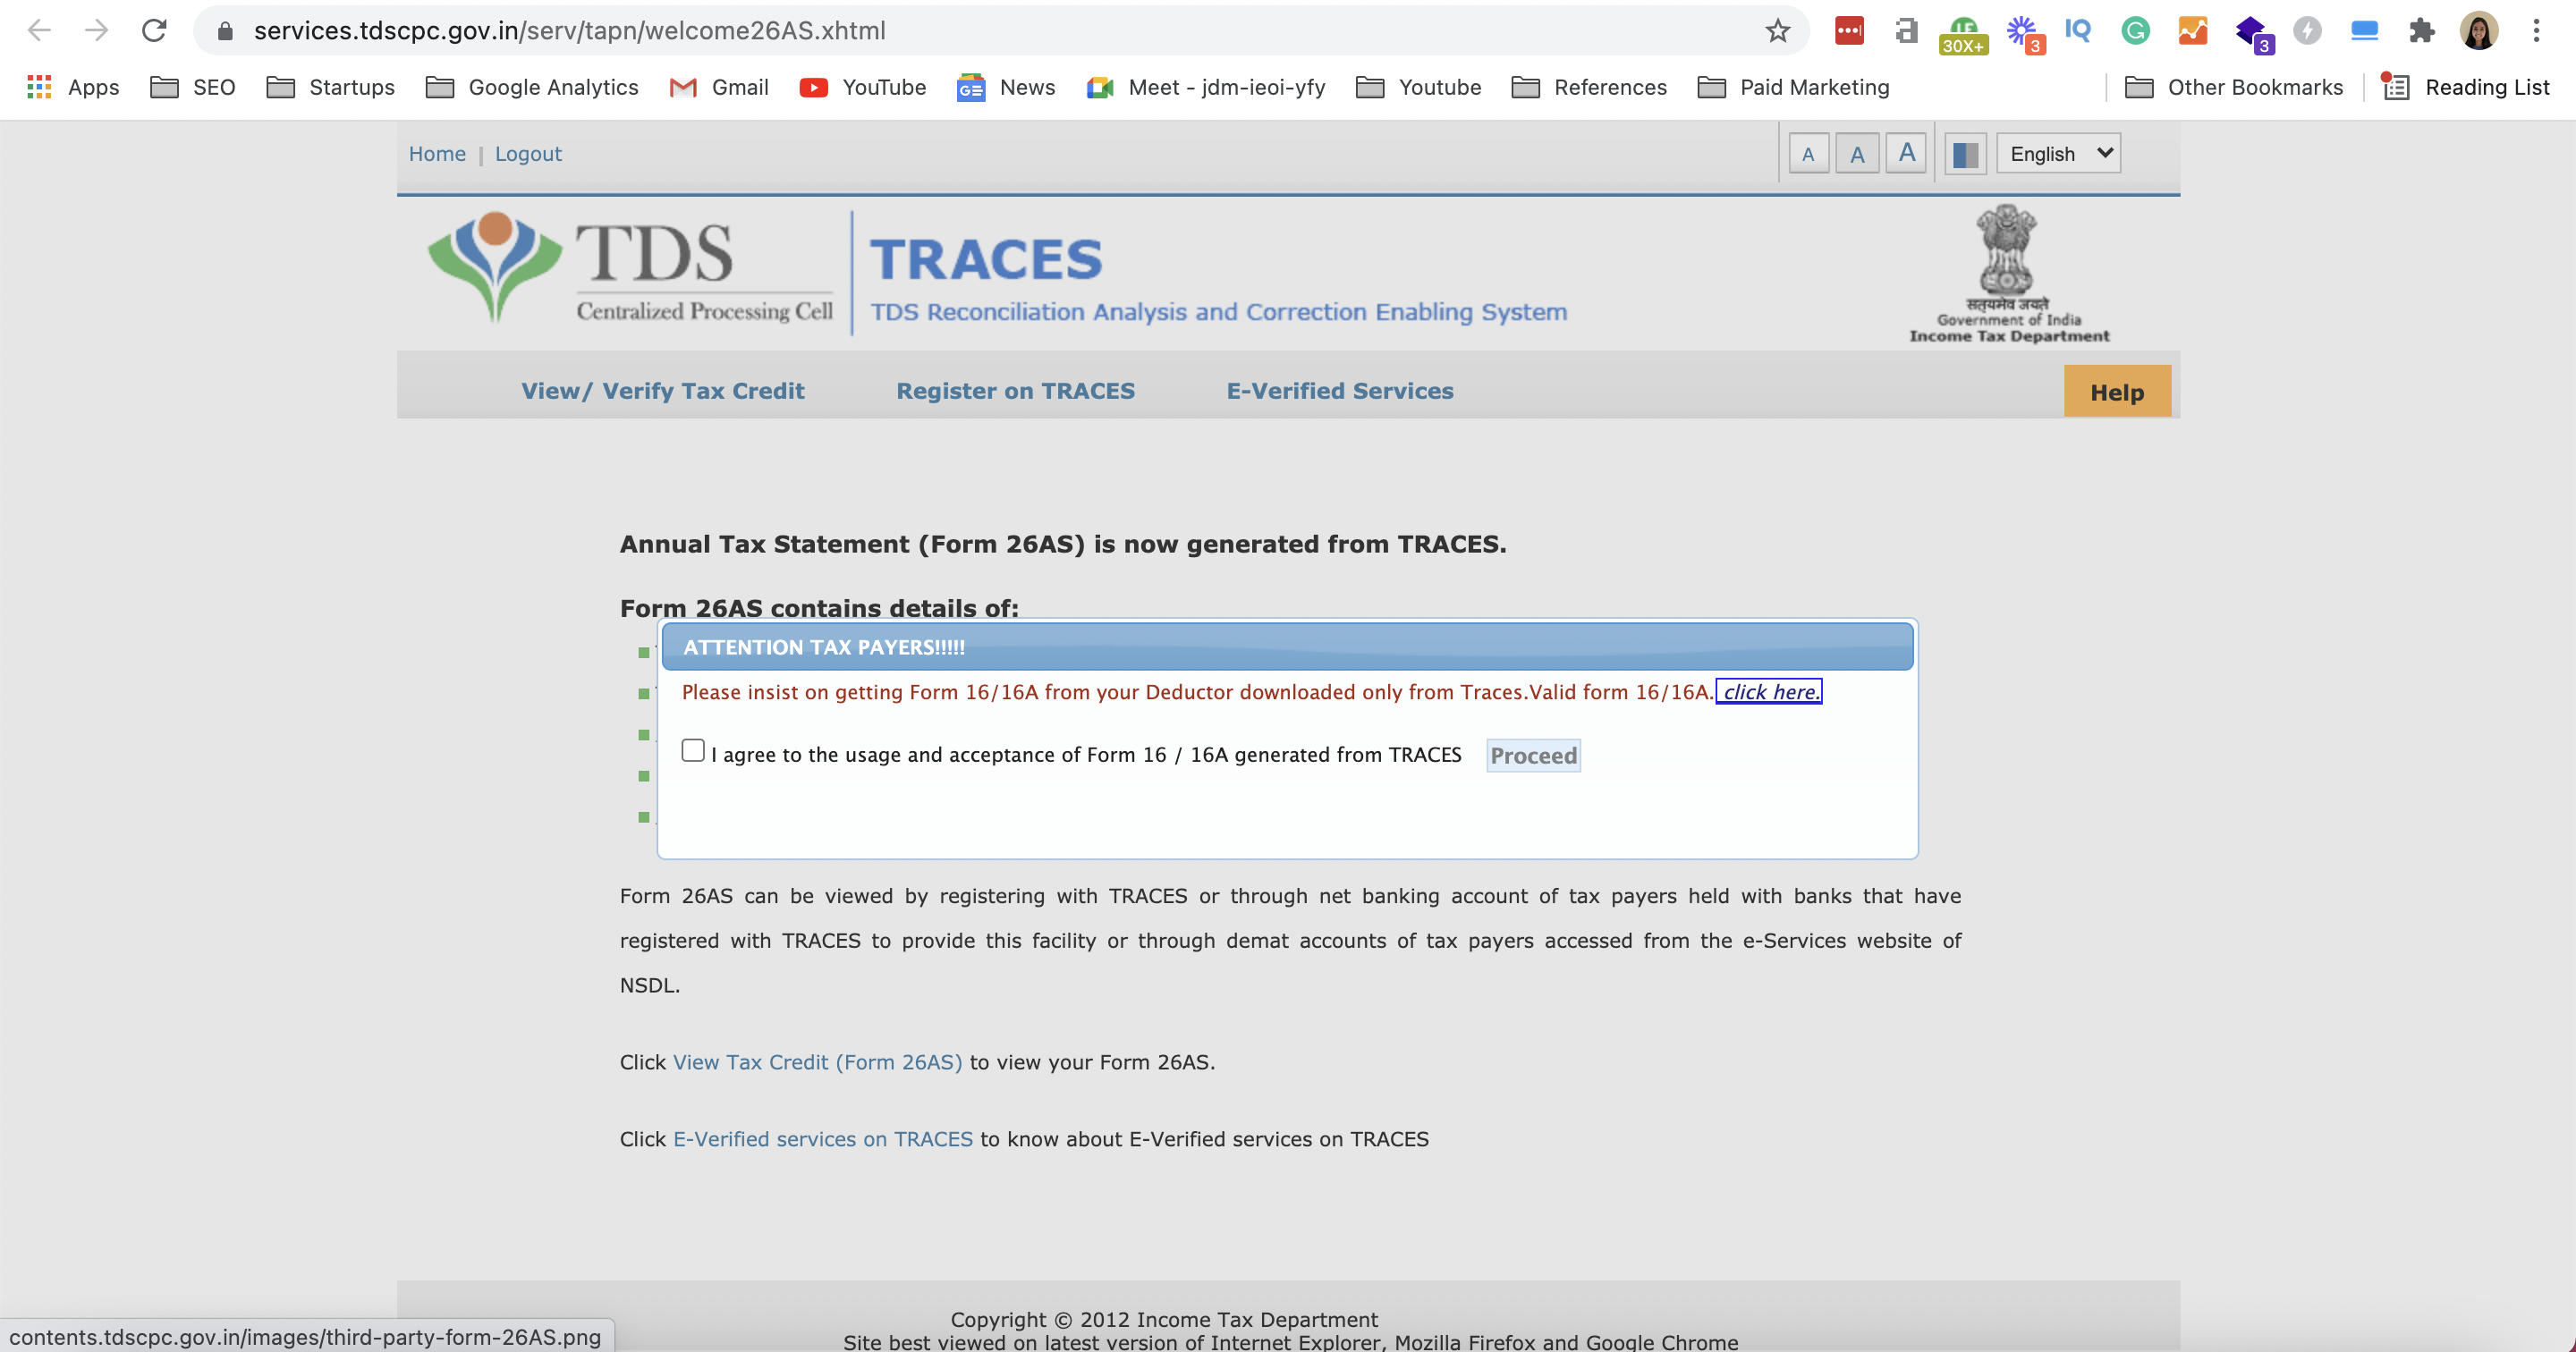 www.incometax.gov.in - TRACES Homepage